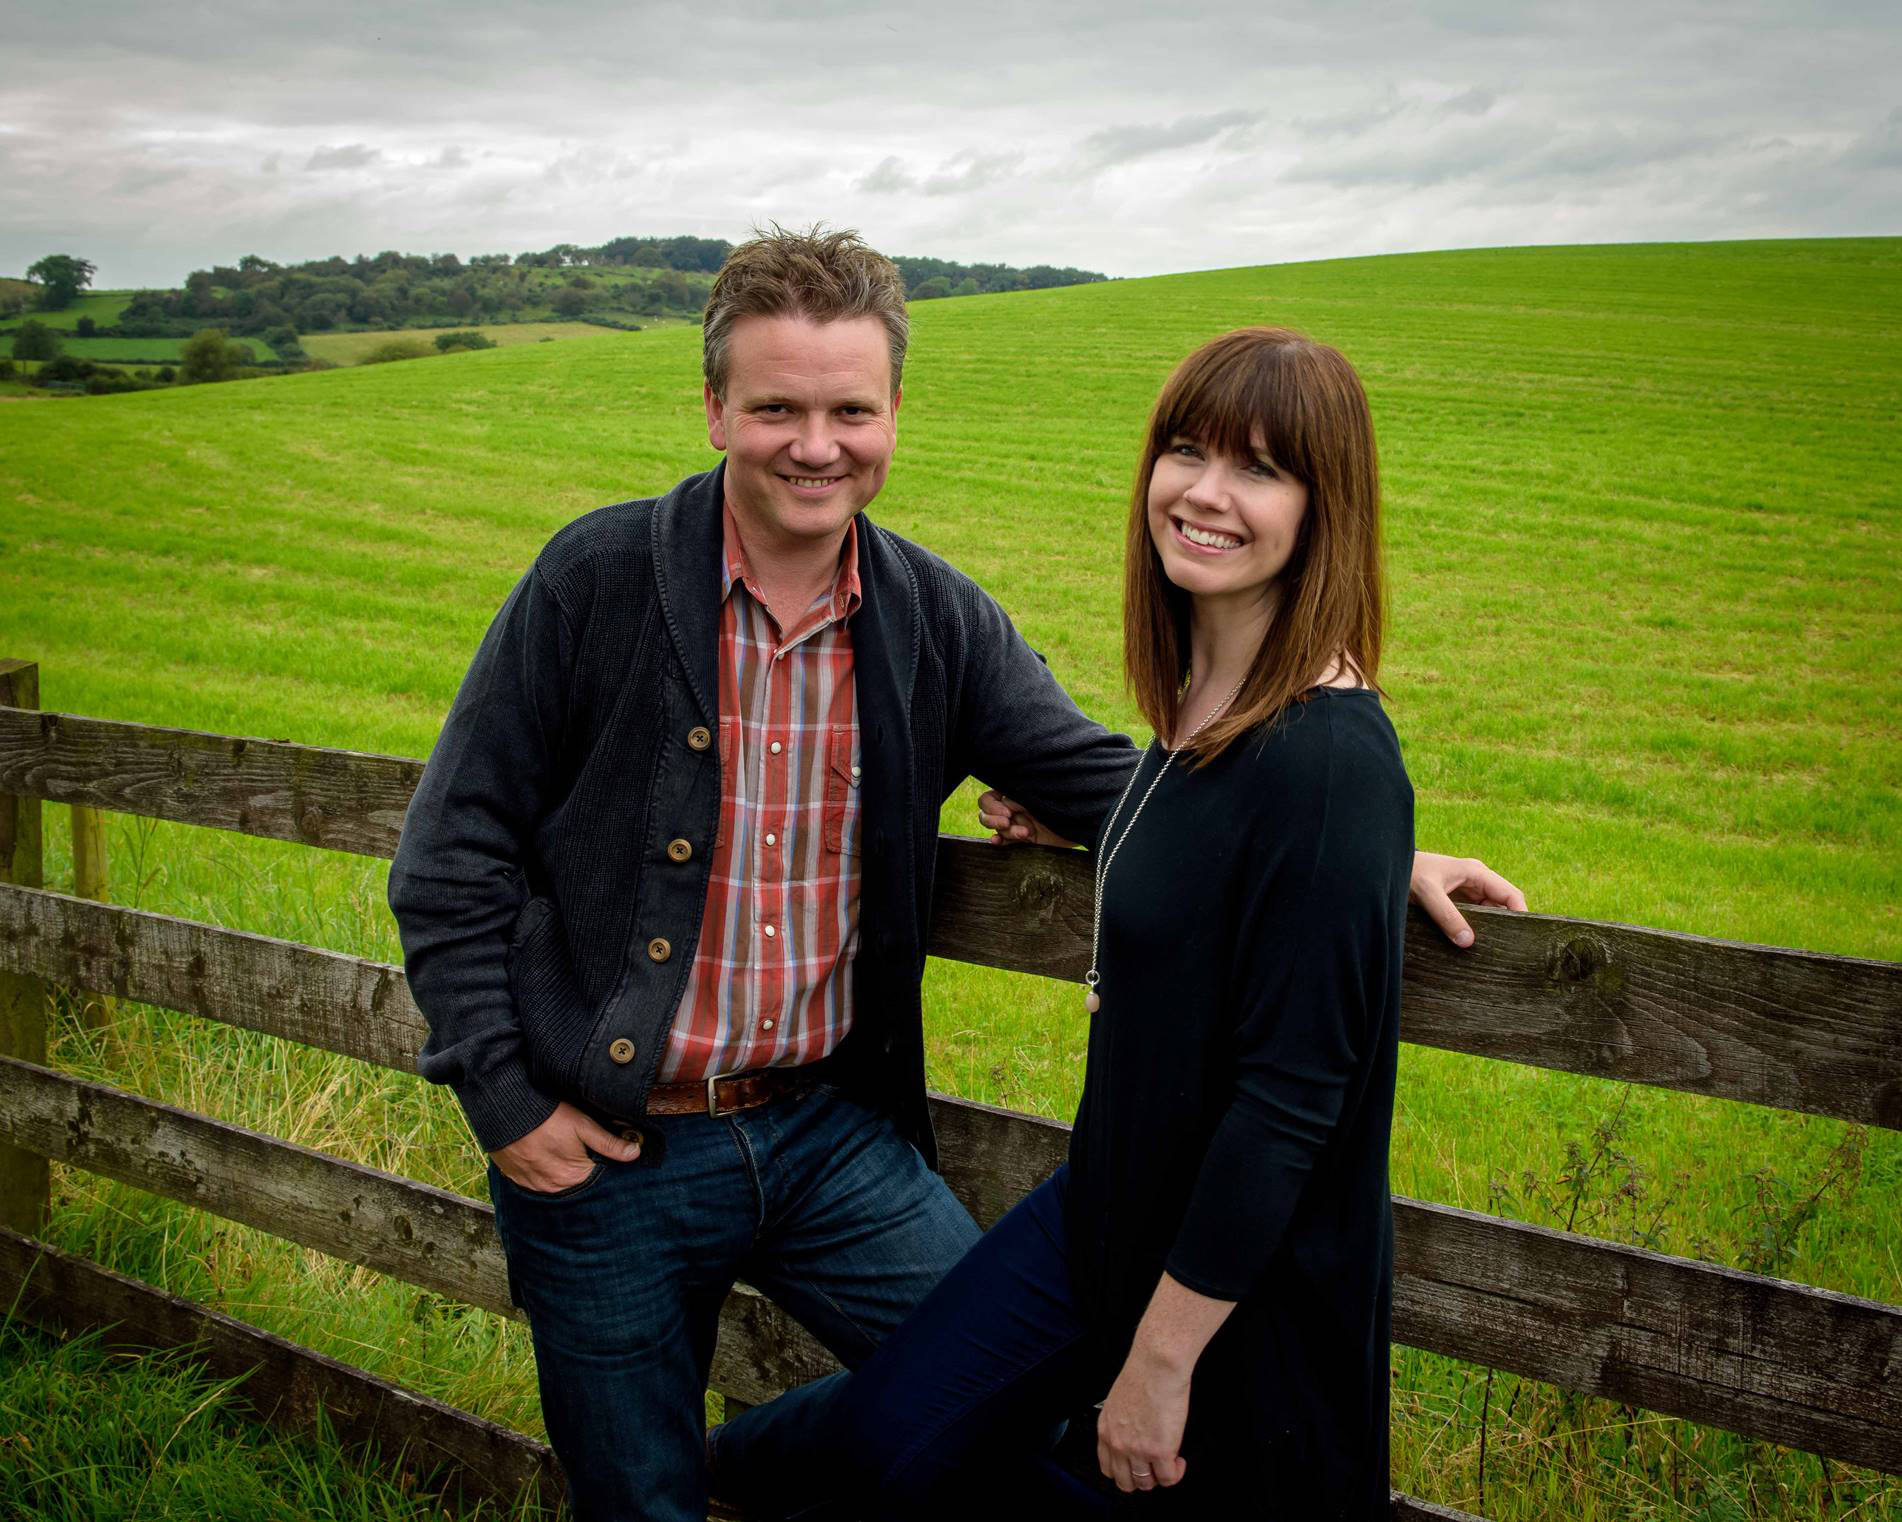 What Are You Like? Keith & Kristyn Getty | Irish America